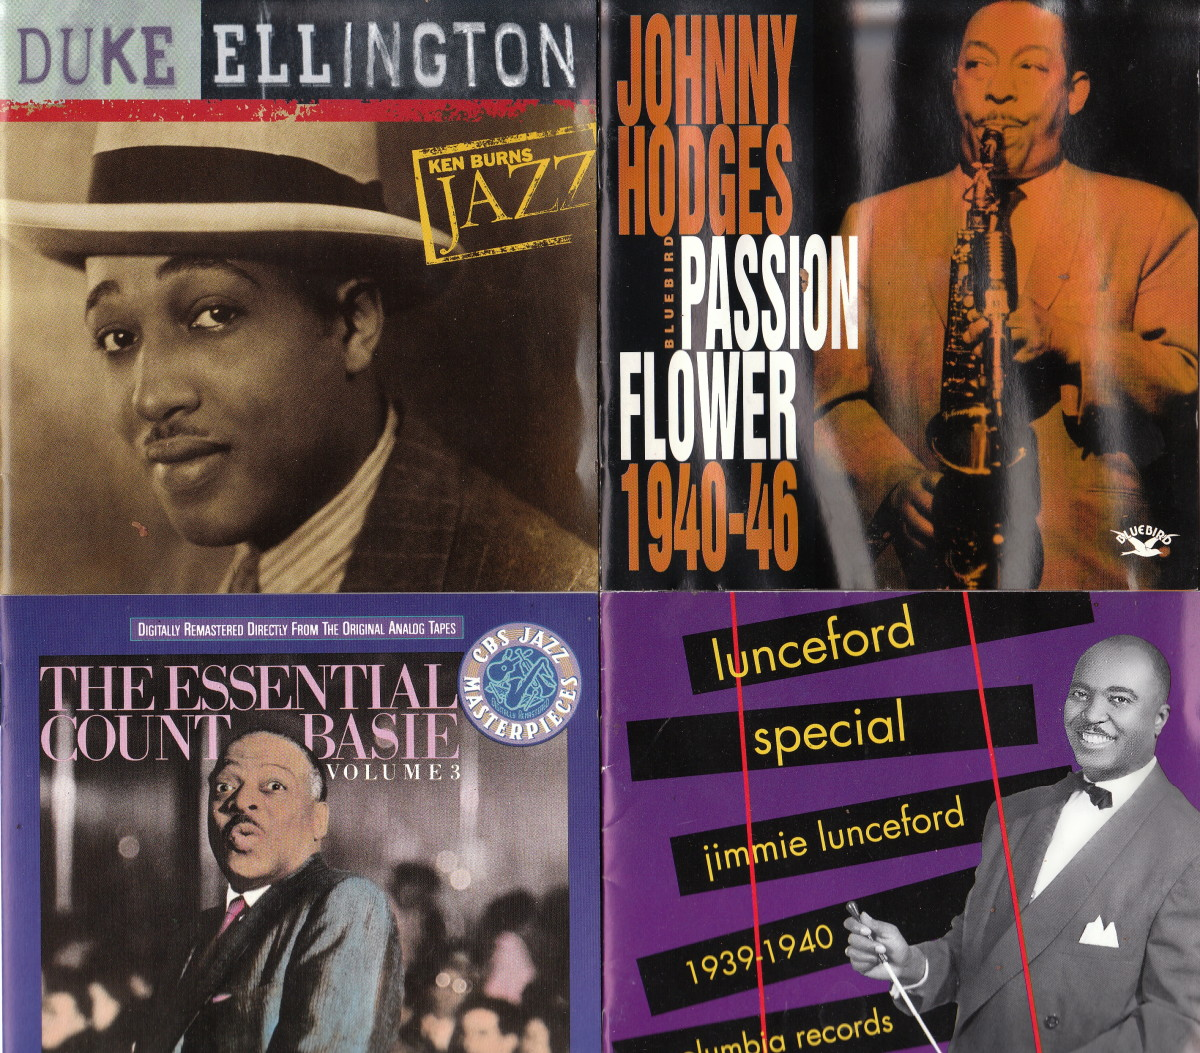 Clockwise: Duke Ellington; Johnny Hodges; Count Basie; Jimmie Lunceford